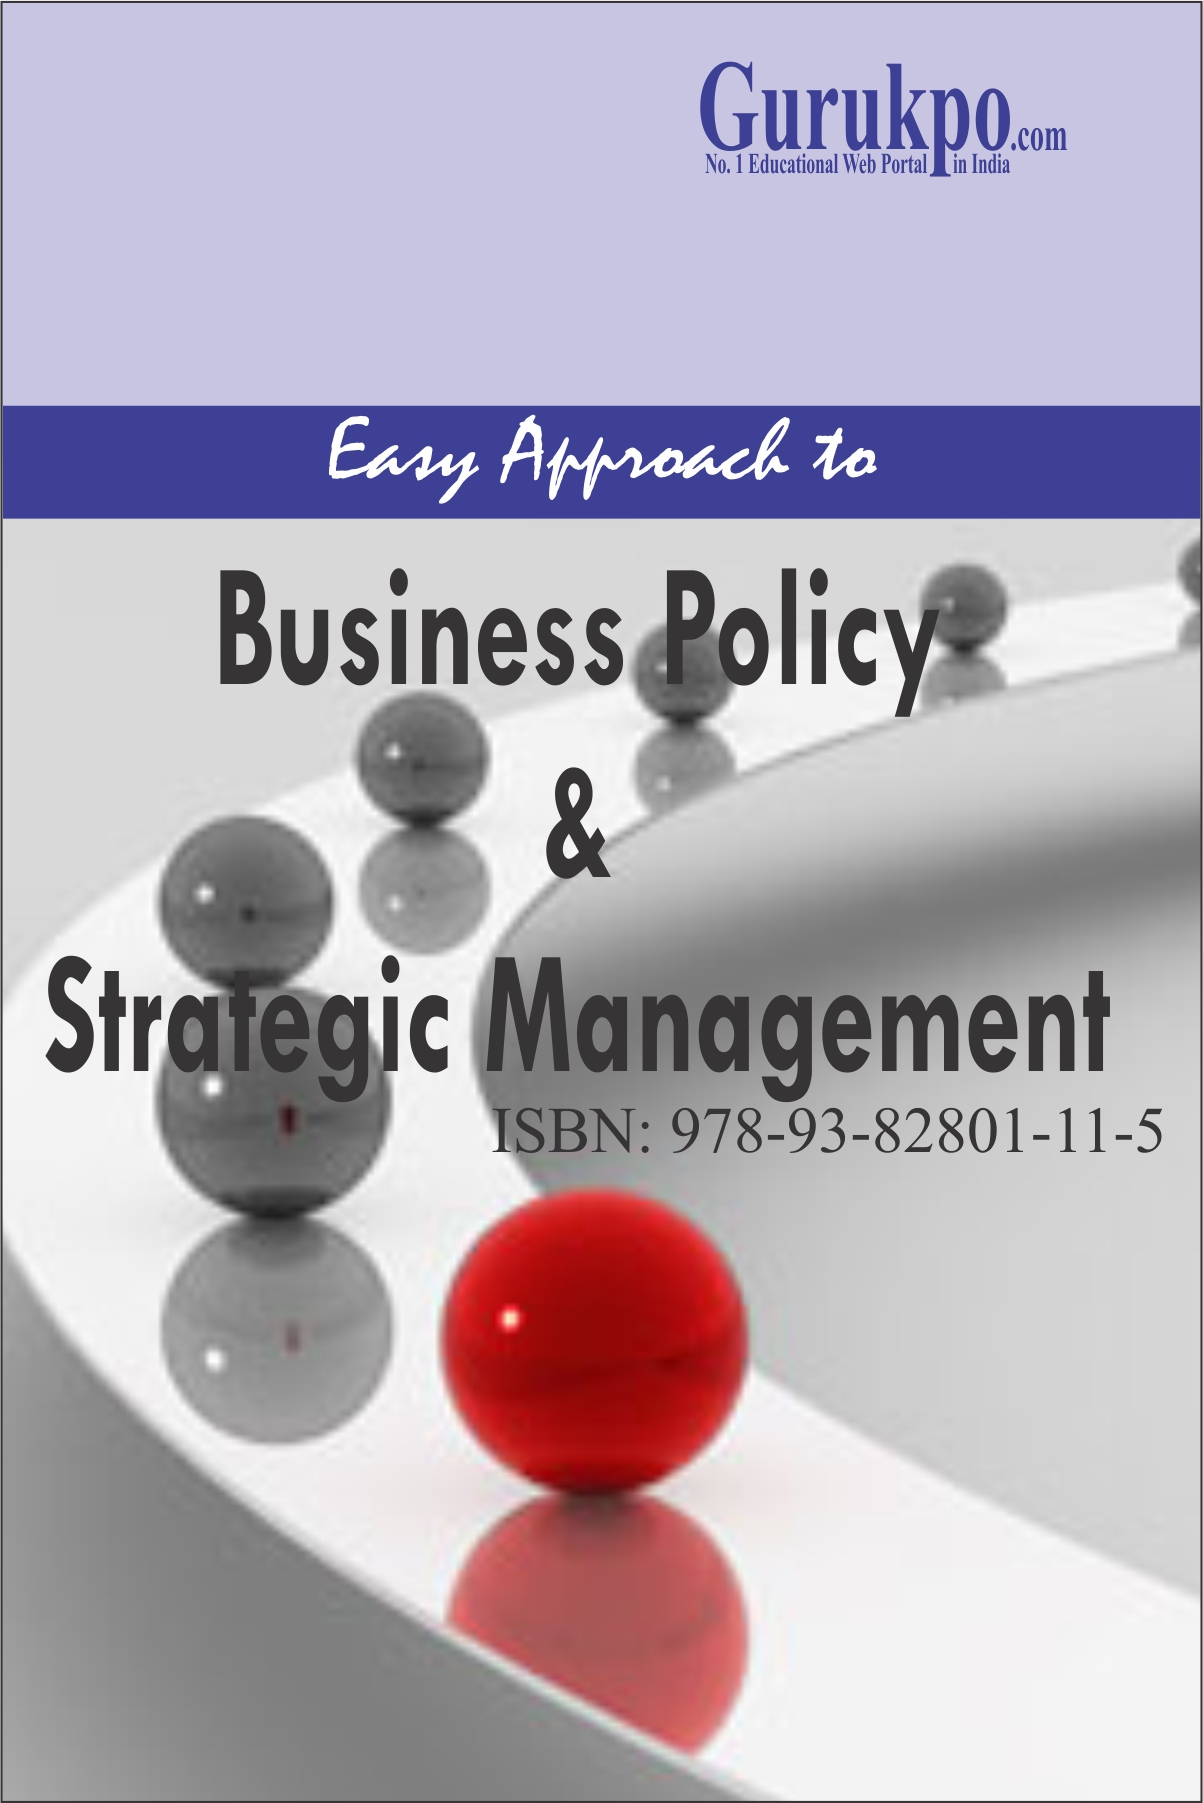 ba 388t strategic management Ephraim daniel studies research project management  ba 388t strategic management i henderson 02295 doc 1 more by ephraim daniel download (doc) bookmark-.